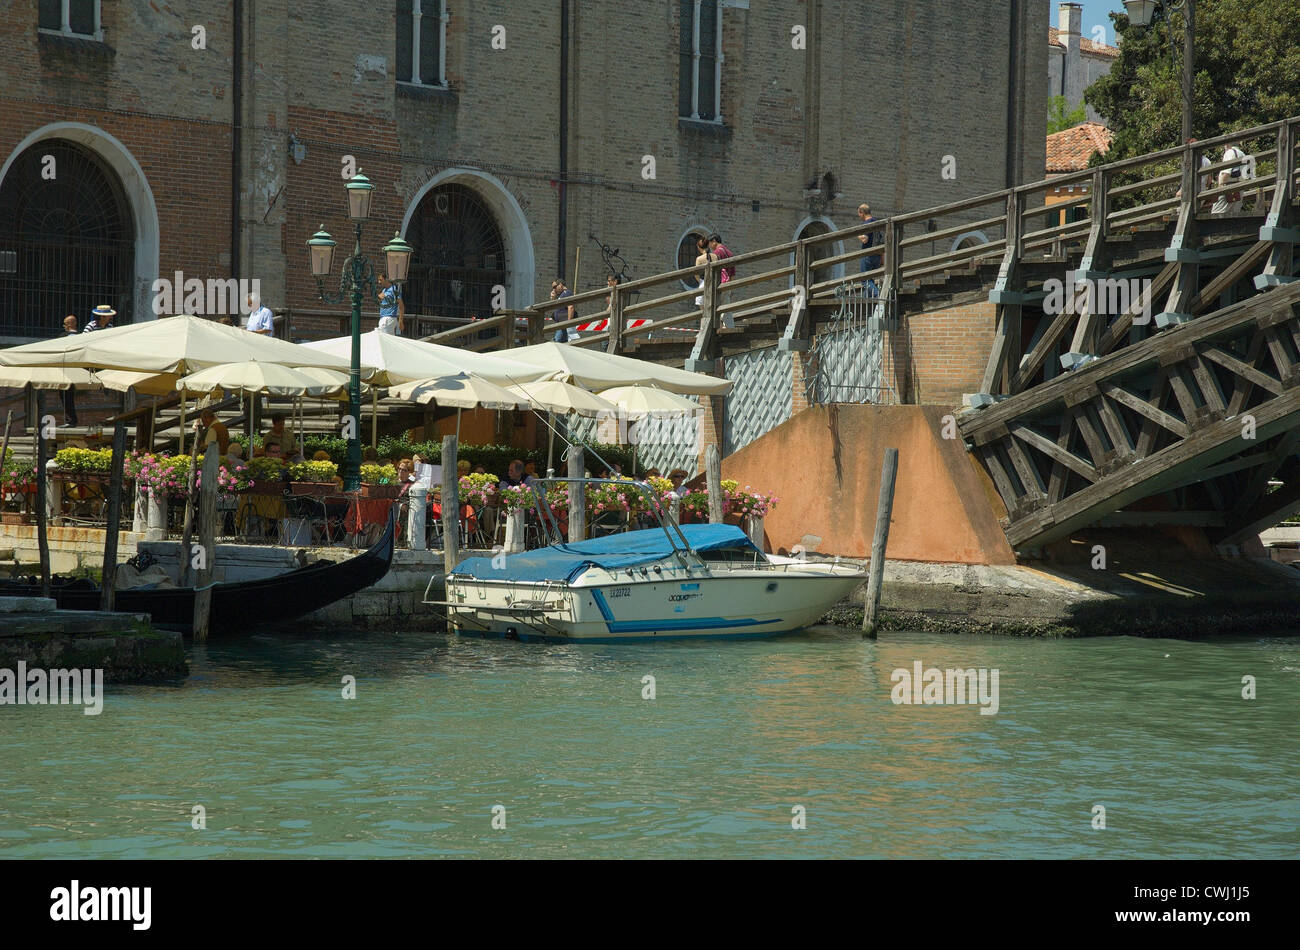 A restaurant at the base of Accademia bridge, Canal Grande, Venice. - Stock Image